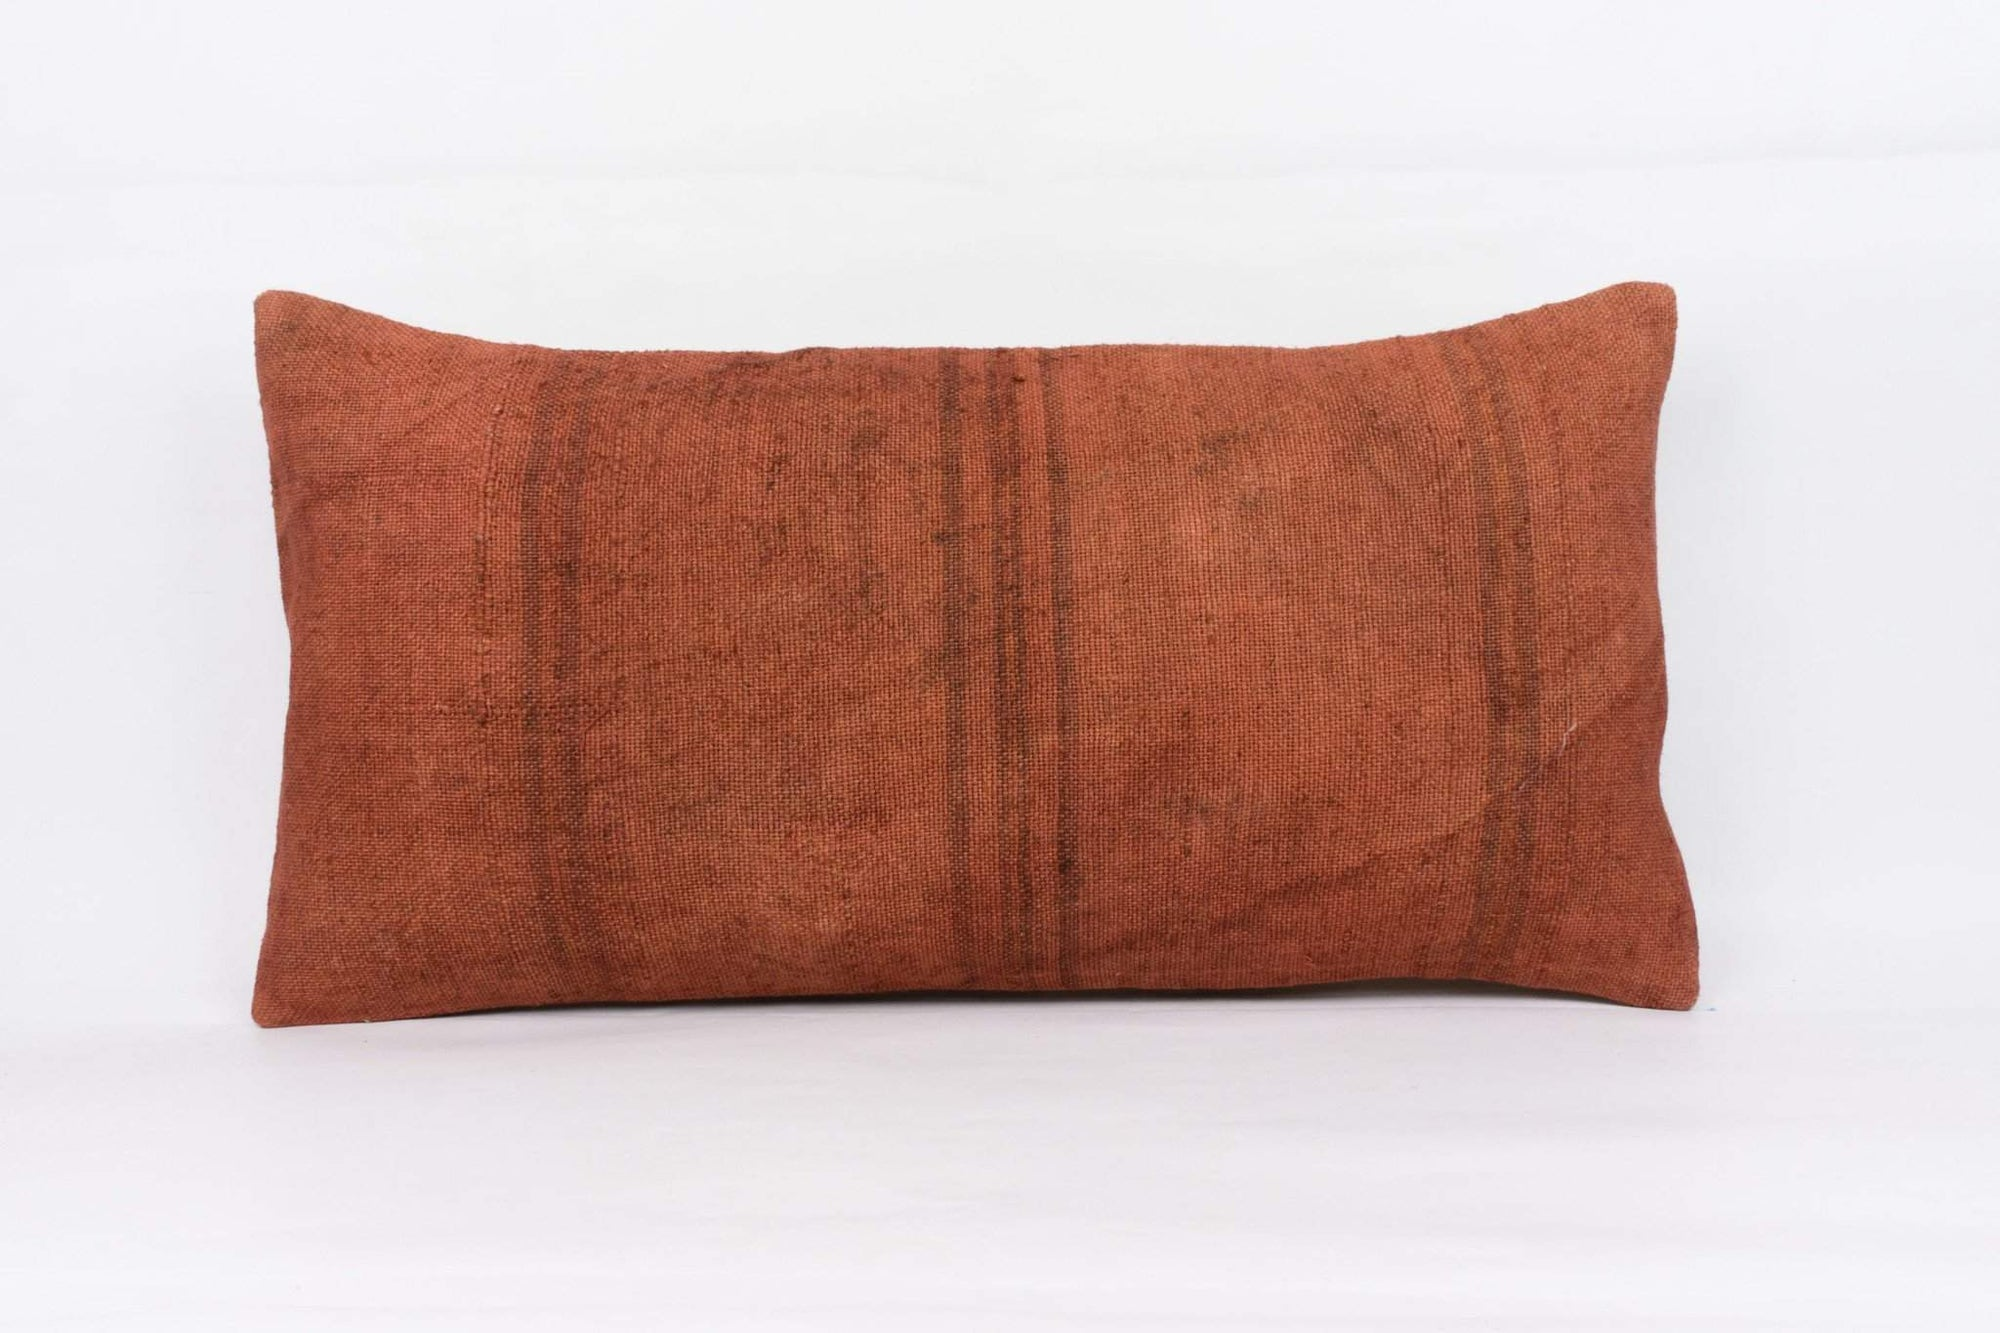 Plain Brown Kilim Pillow Cover 12x24 4184